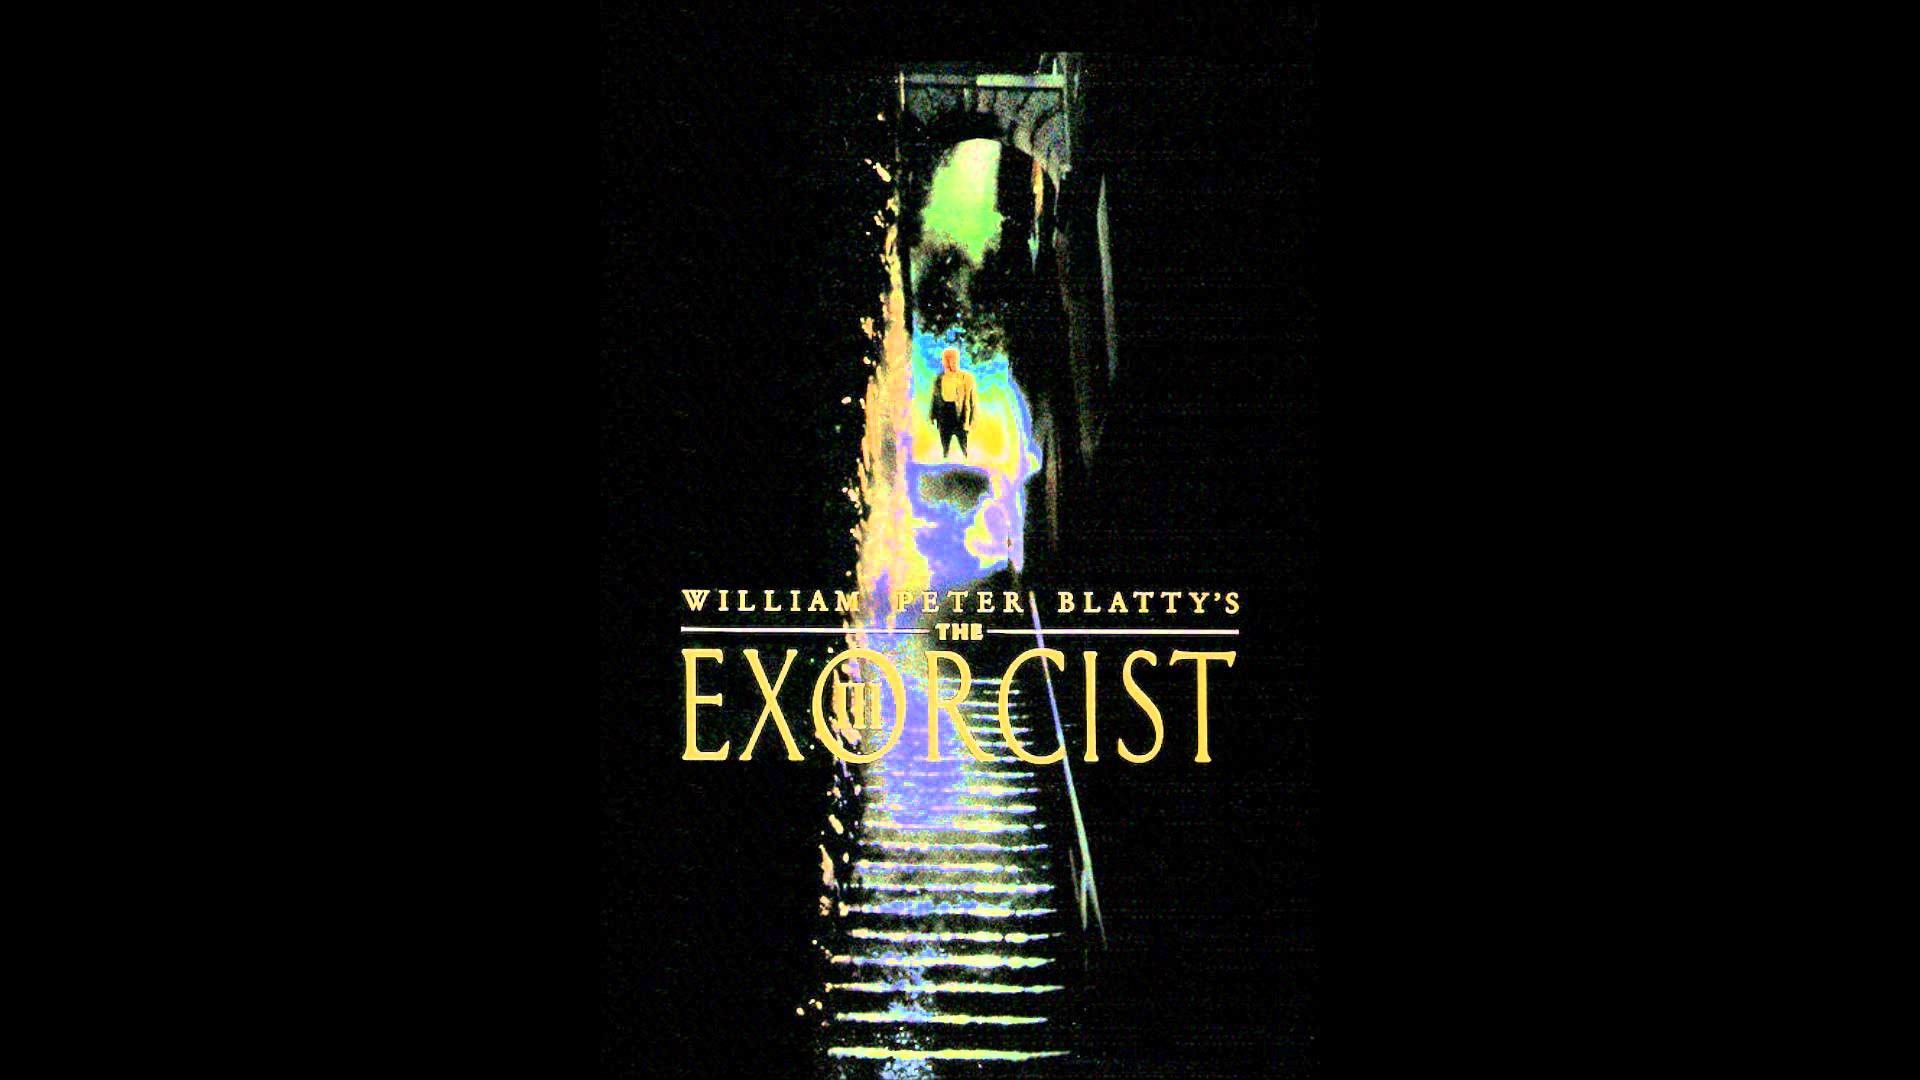 The Exorcist Wallpapers 183 ①